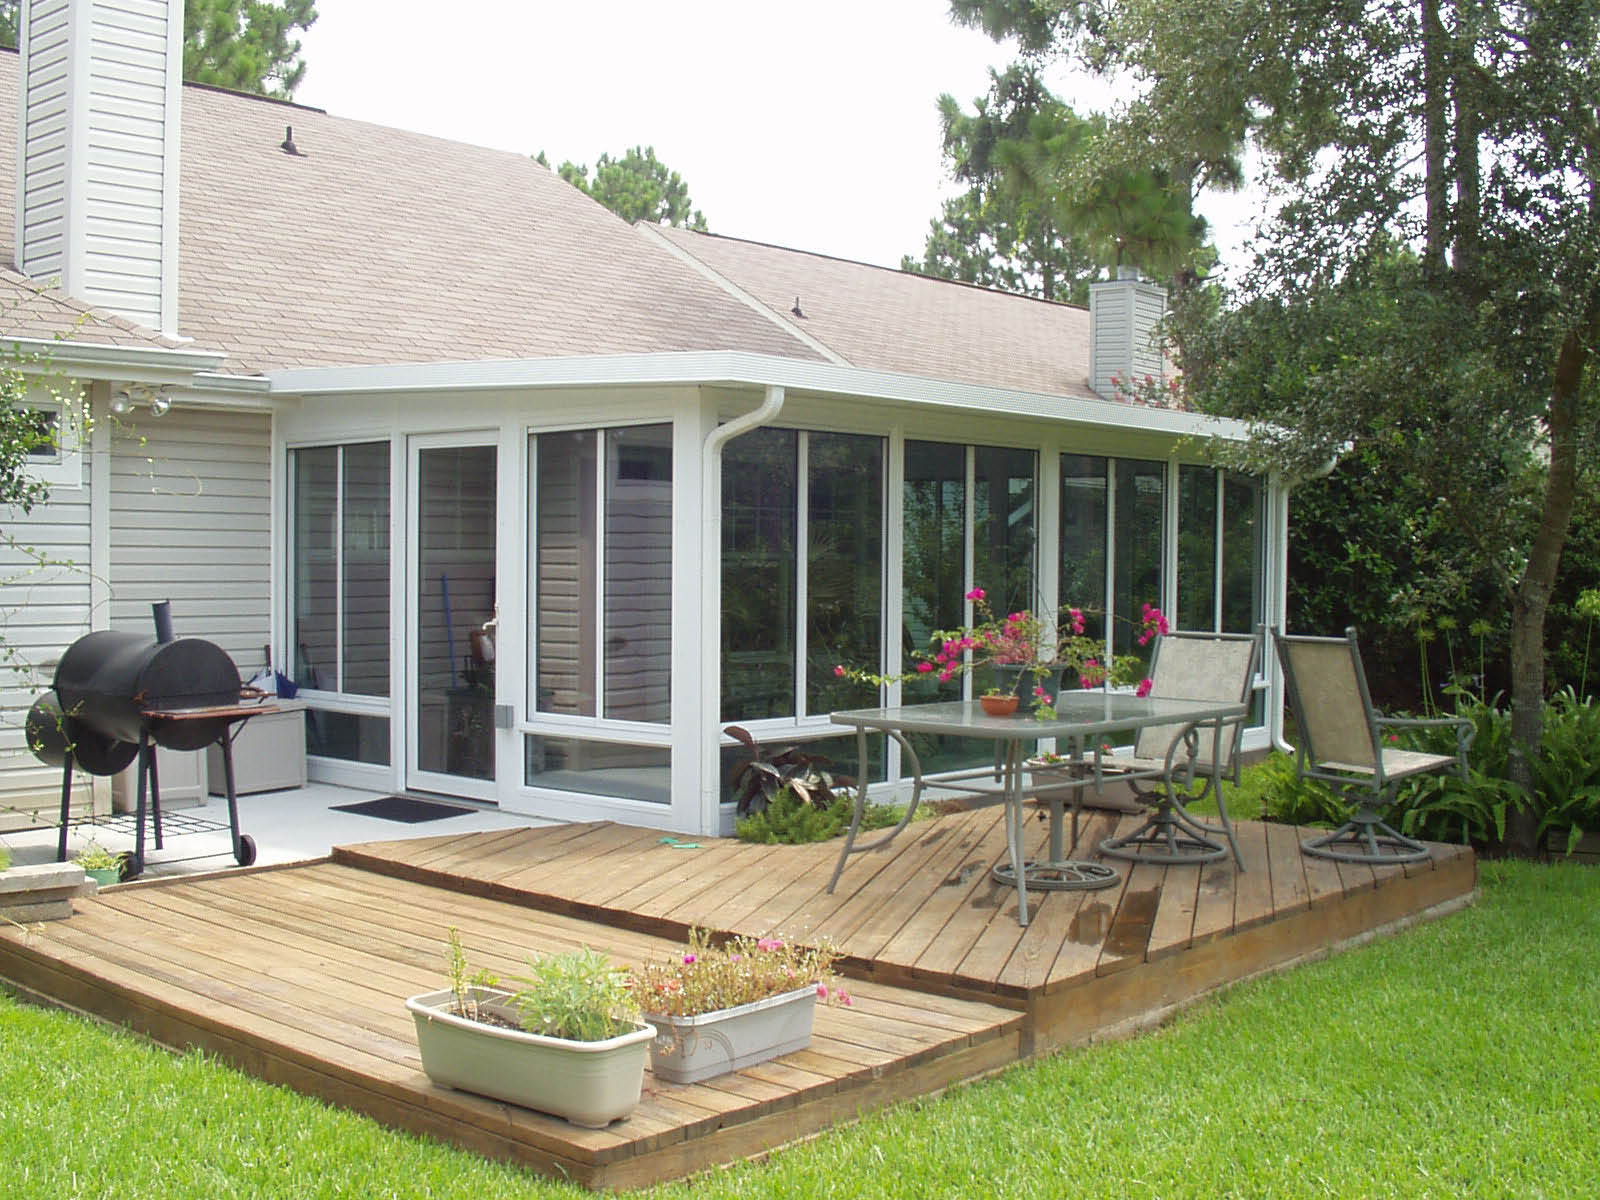 photo of TEMO patio enclosure from Exterior Designers Inc. in Valparaiso, IN